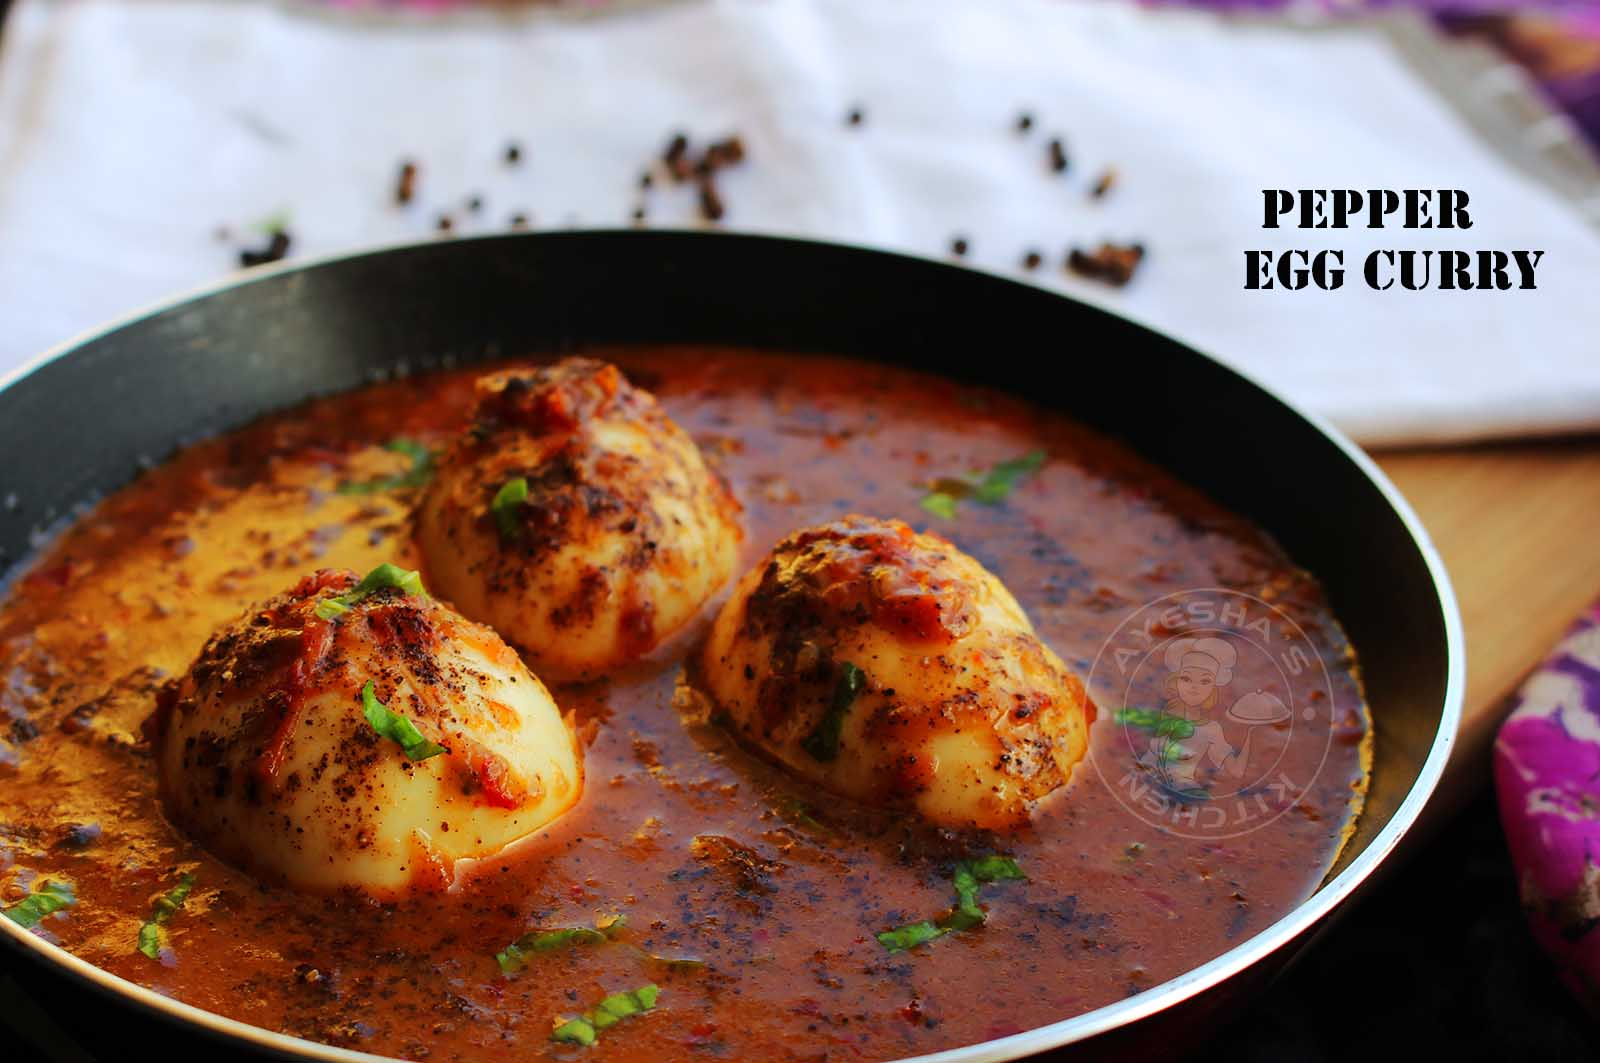 Best egg recipes pepper egg curry egg curry recipe curry masalaegg curry recipe indian egg recipes for dinner pepper and egg recipe egg recipes for breakfast recipes for eggs quick easy egg recipes forumfinder Images